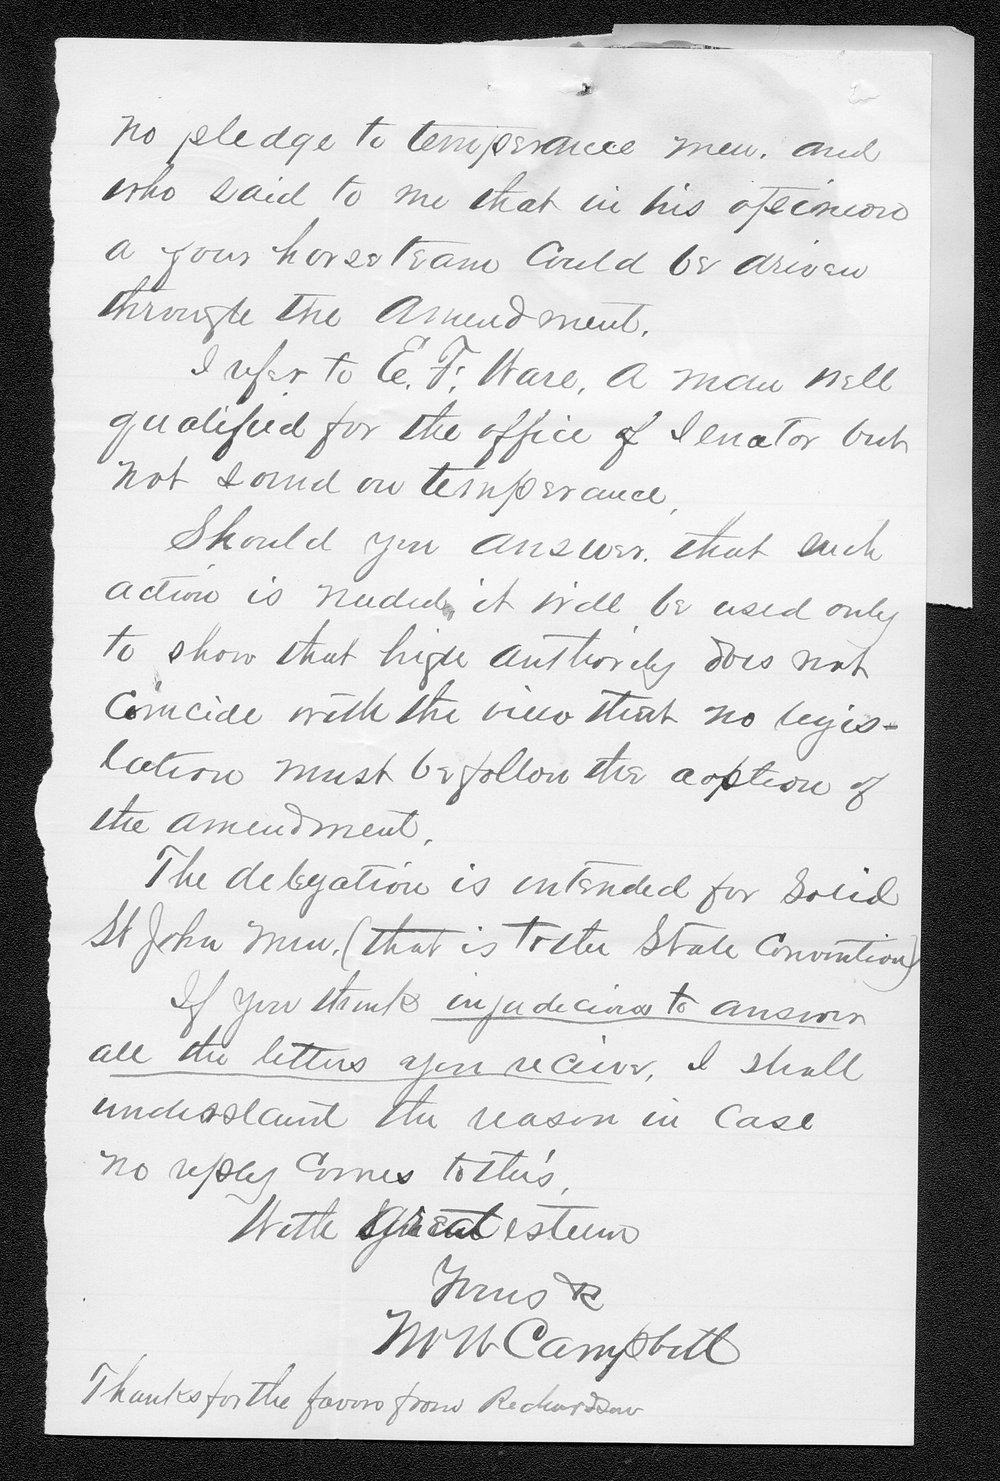 W. W. Campbell to Governor John St. John - 2